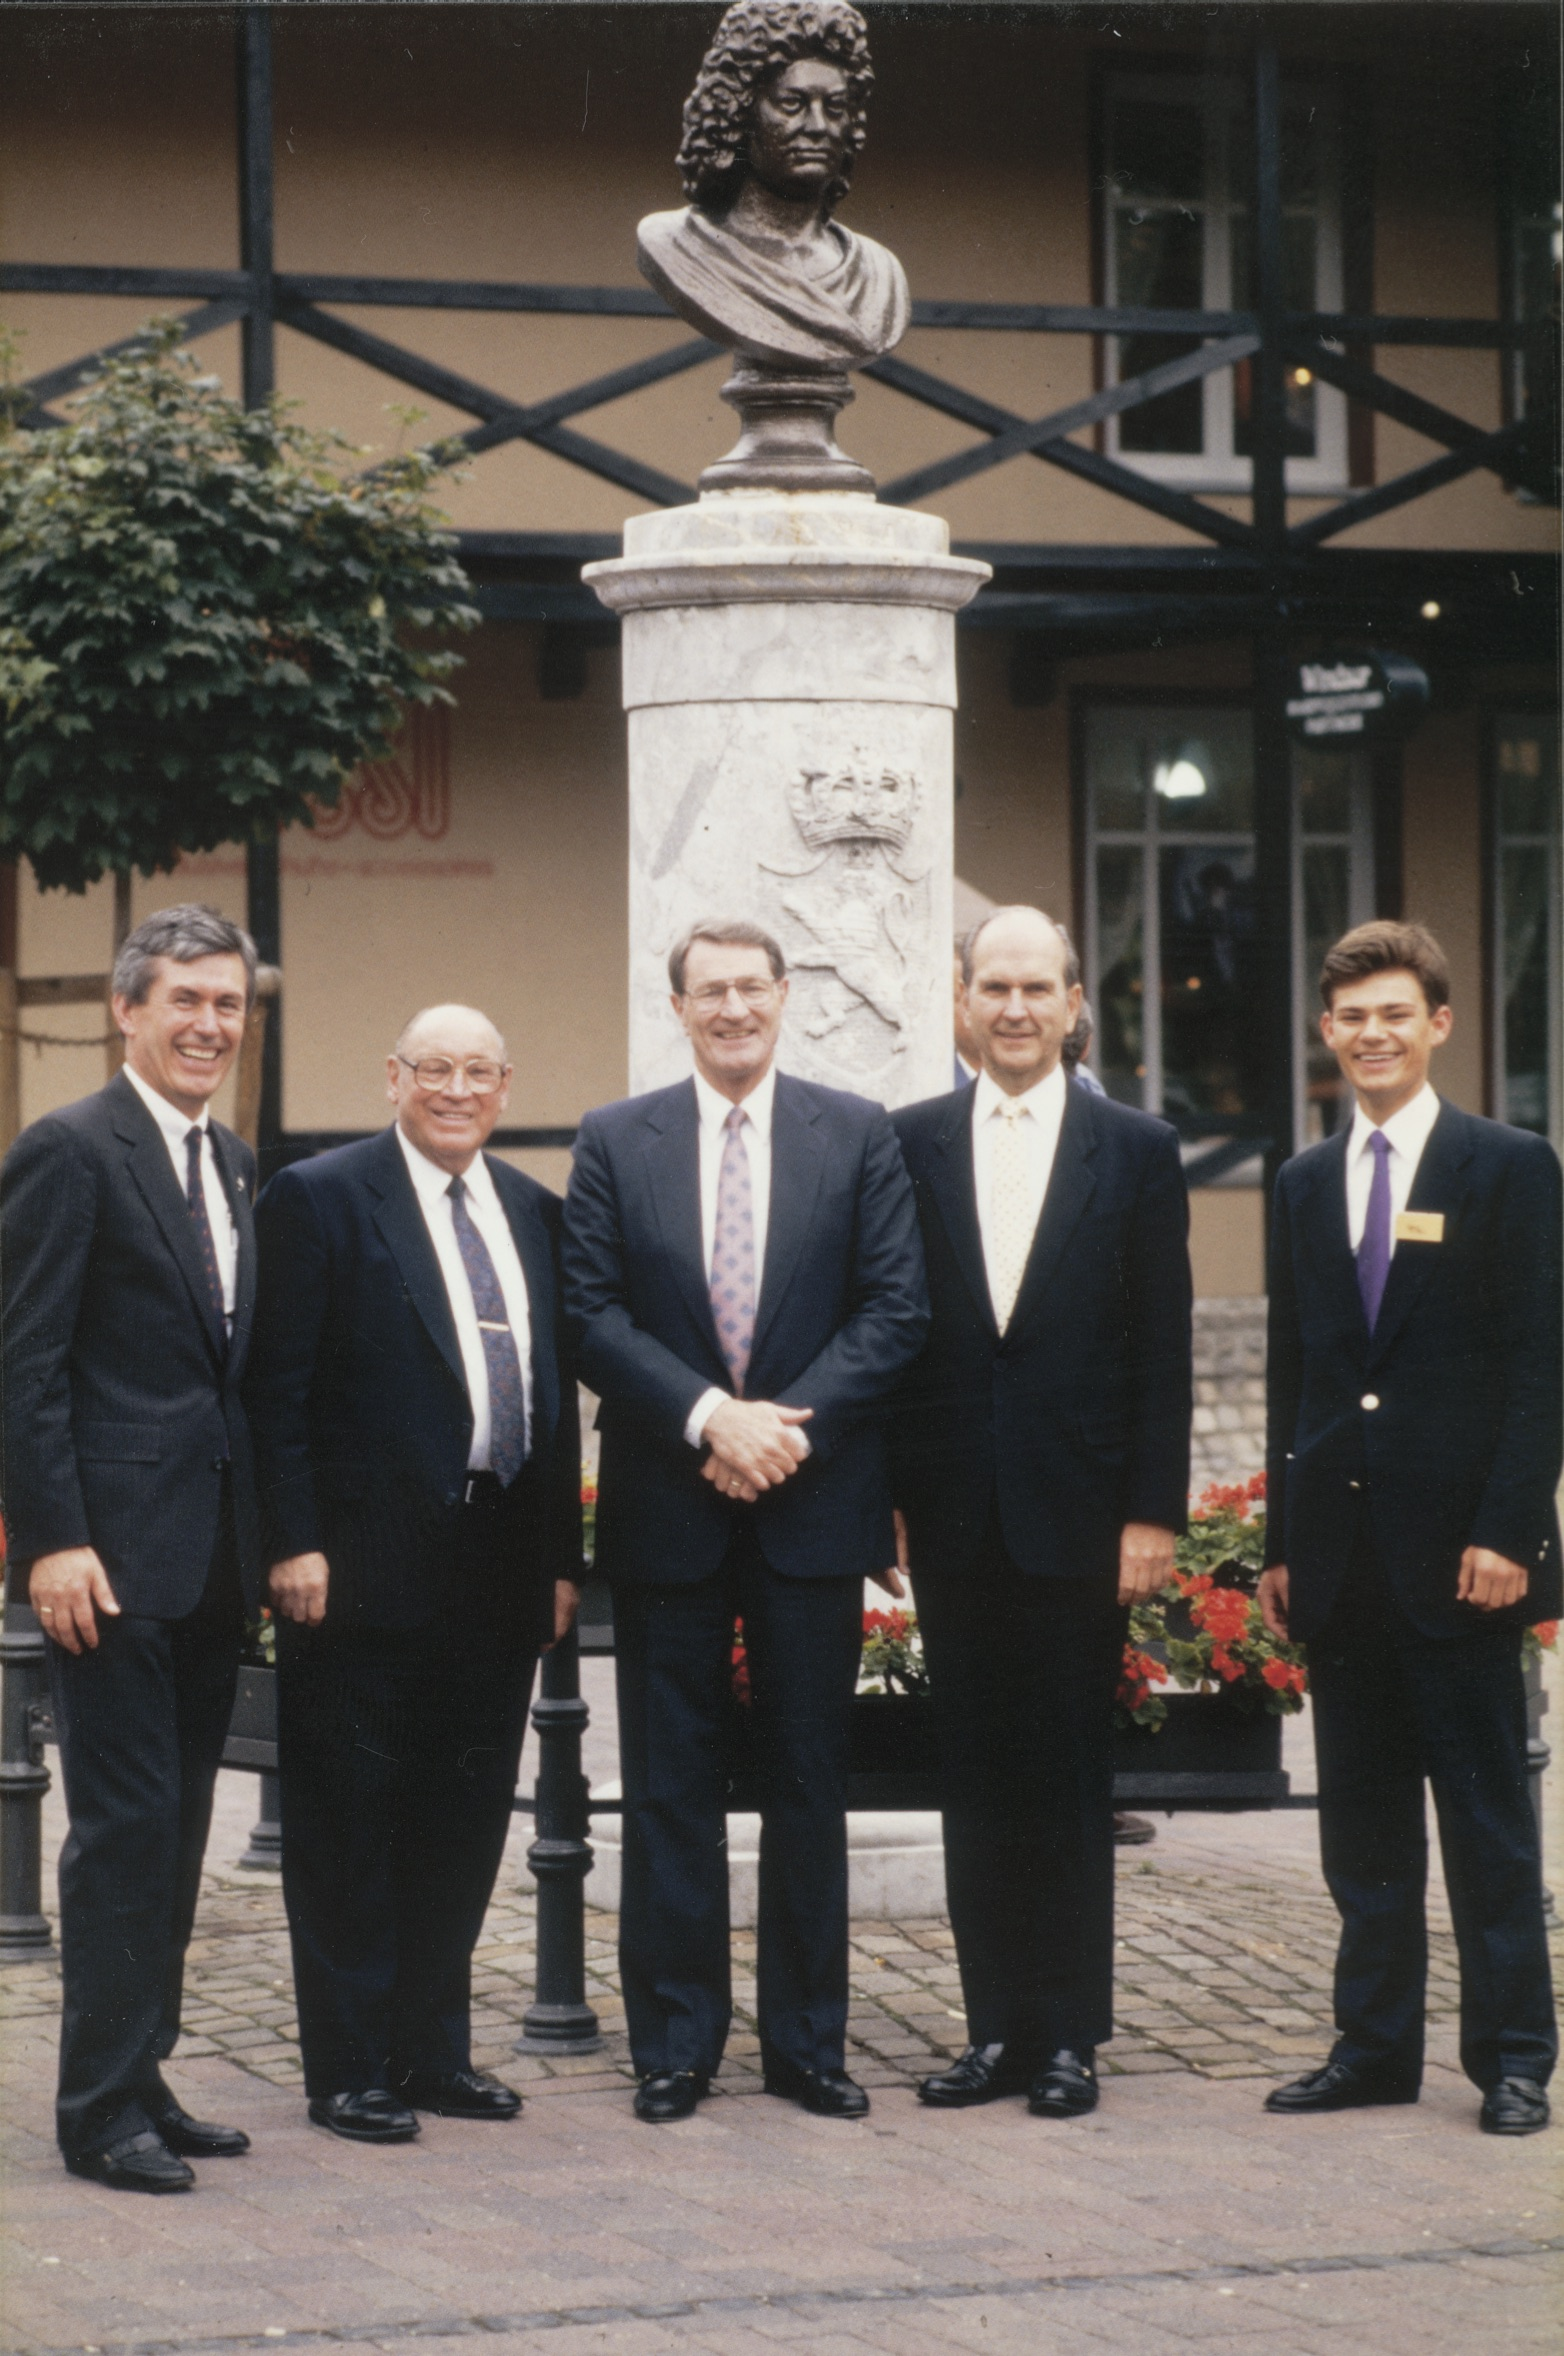 Dieter F. Uchtdorf, who was serving as the Frankfurt temple committee chair, and his son, Guido, stand with Elder Joseph B. Wirthlin, Elder Neal A. Maxwell and Elder Russell M. Nelson during the Frankfurt Germany Temple open house in 1987.